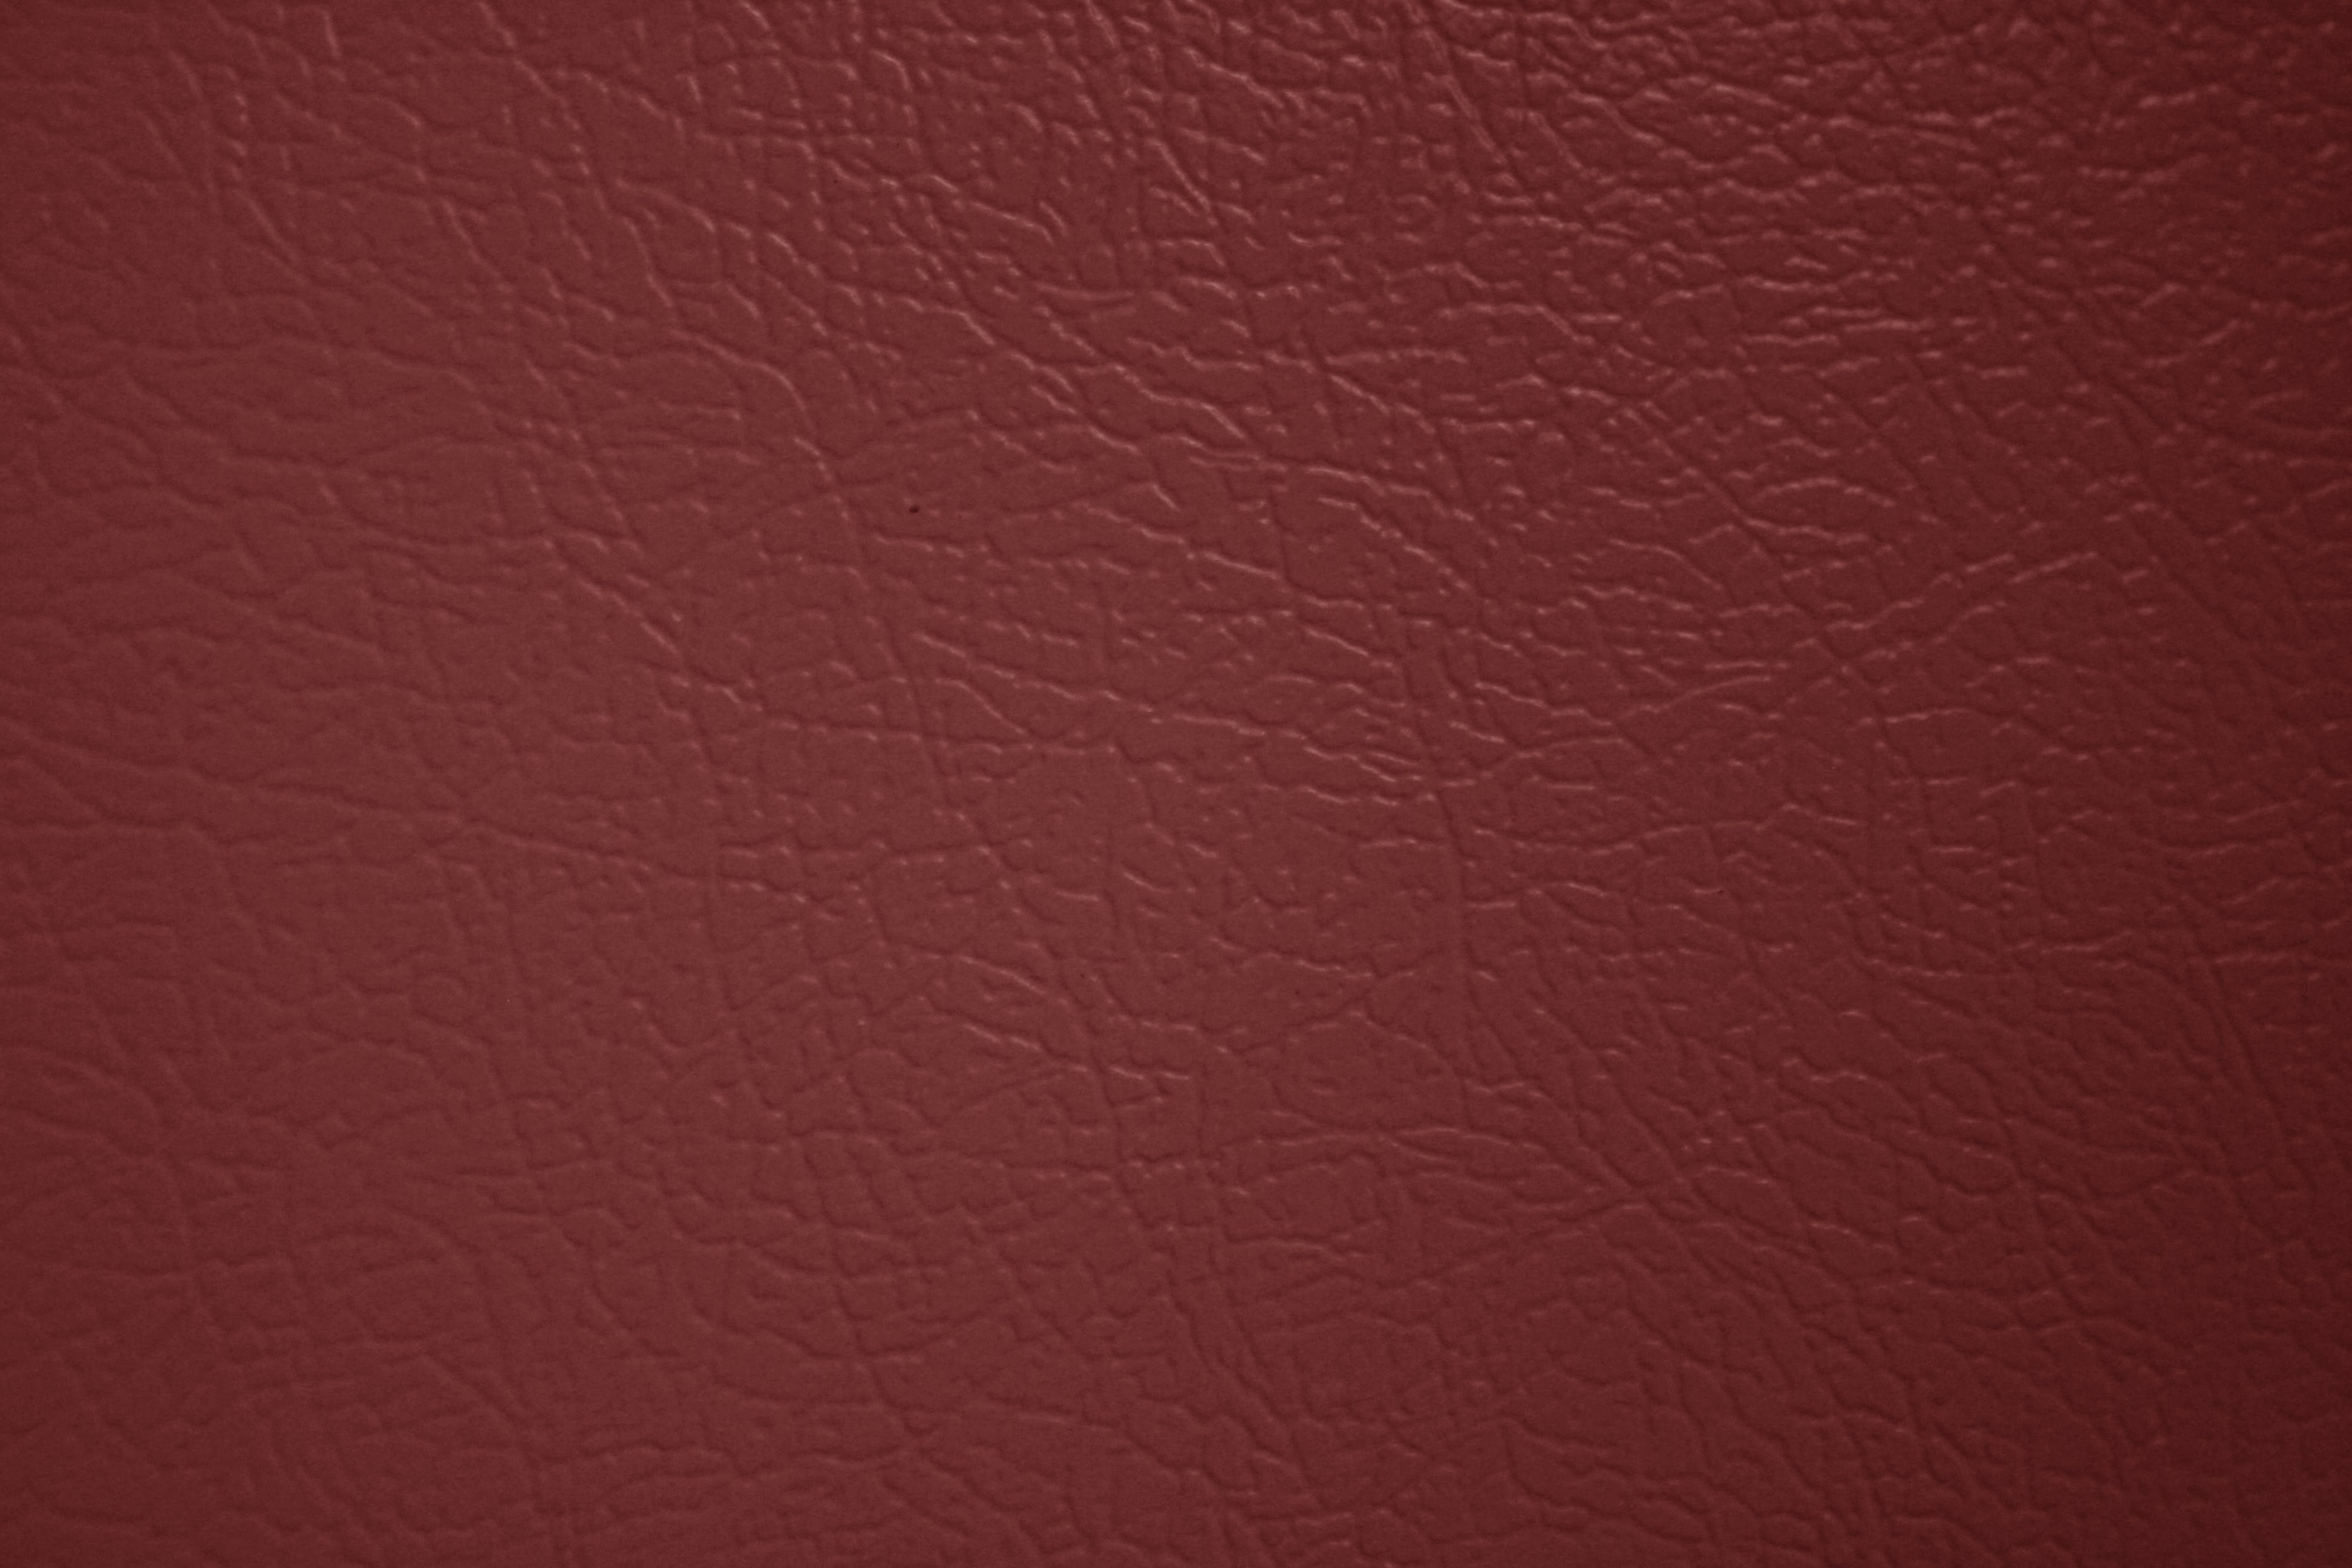 Maroon Faux Leather Texture Picture | Free Photograph ...